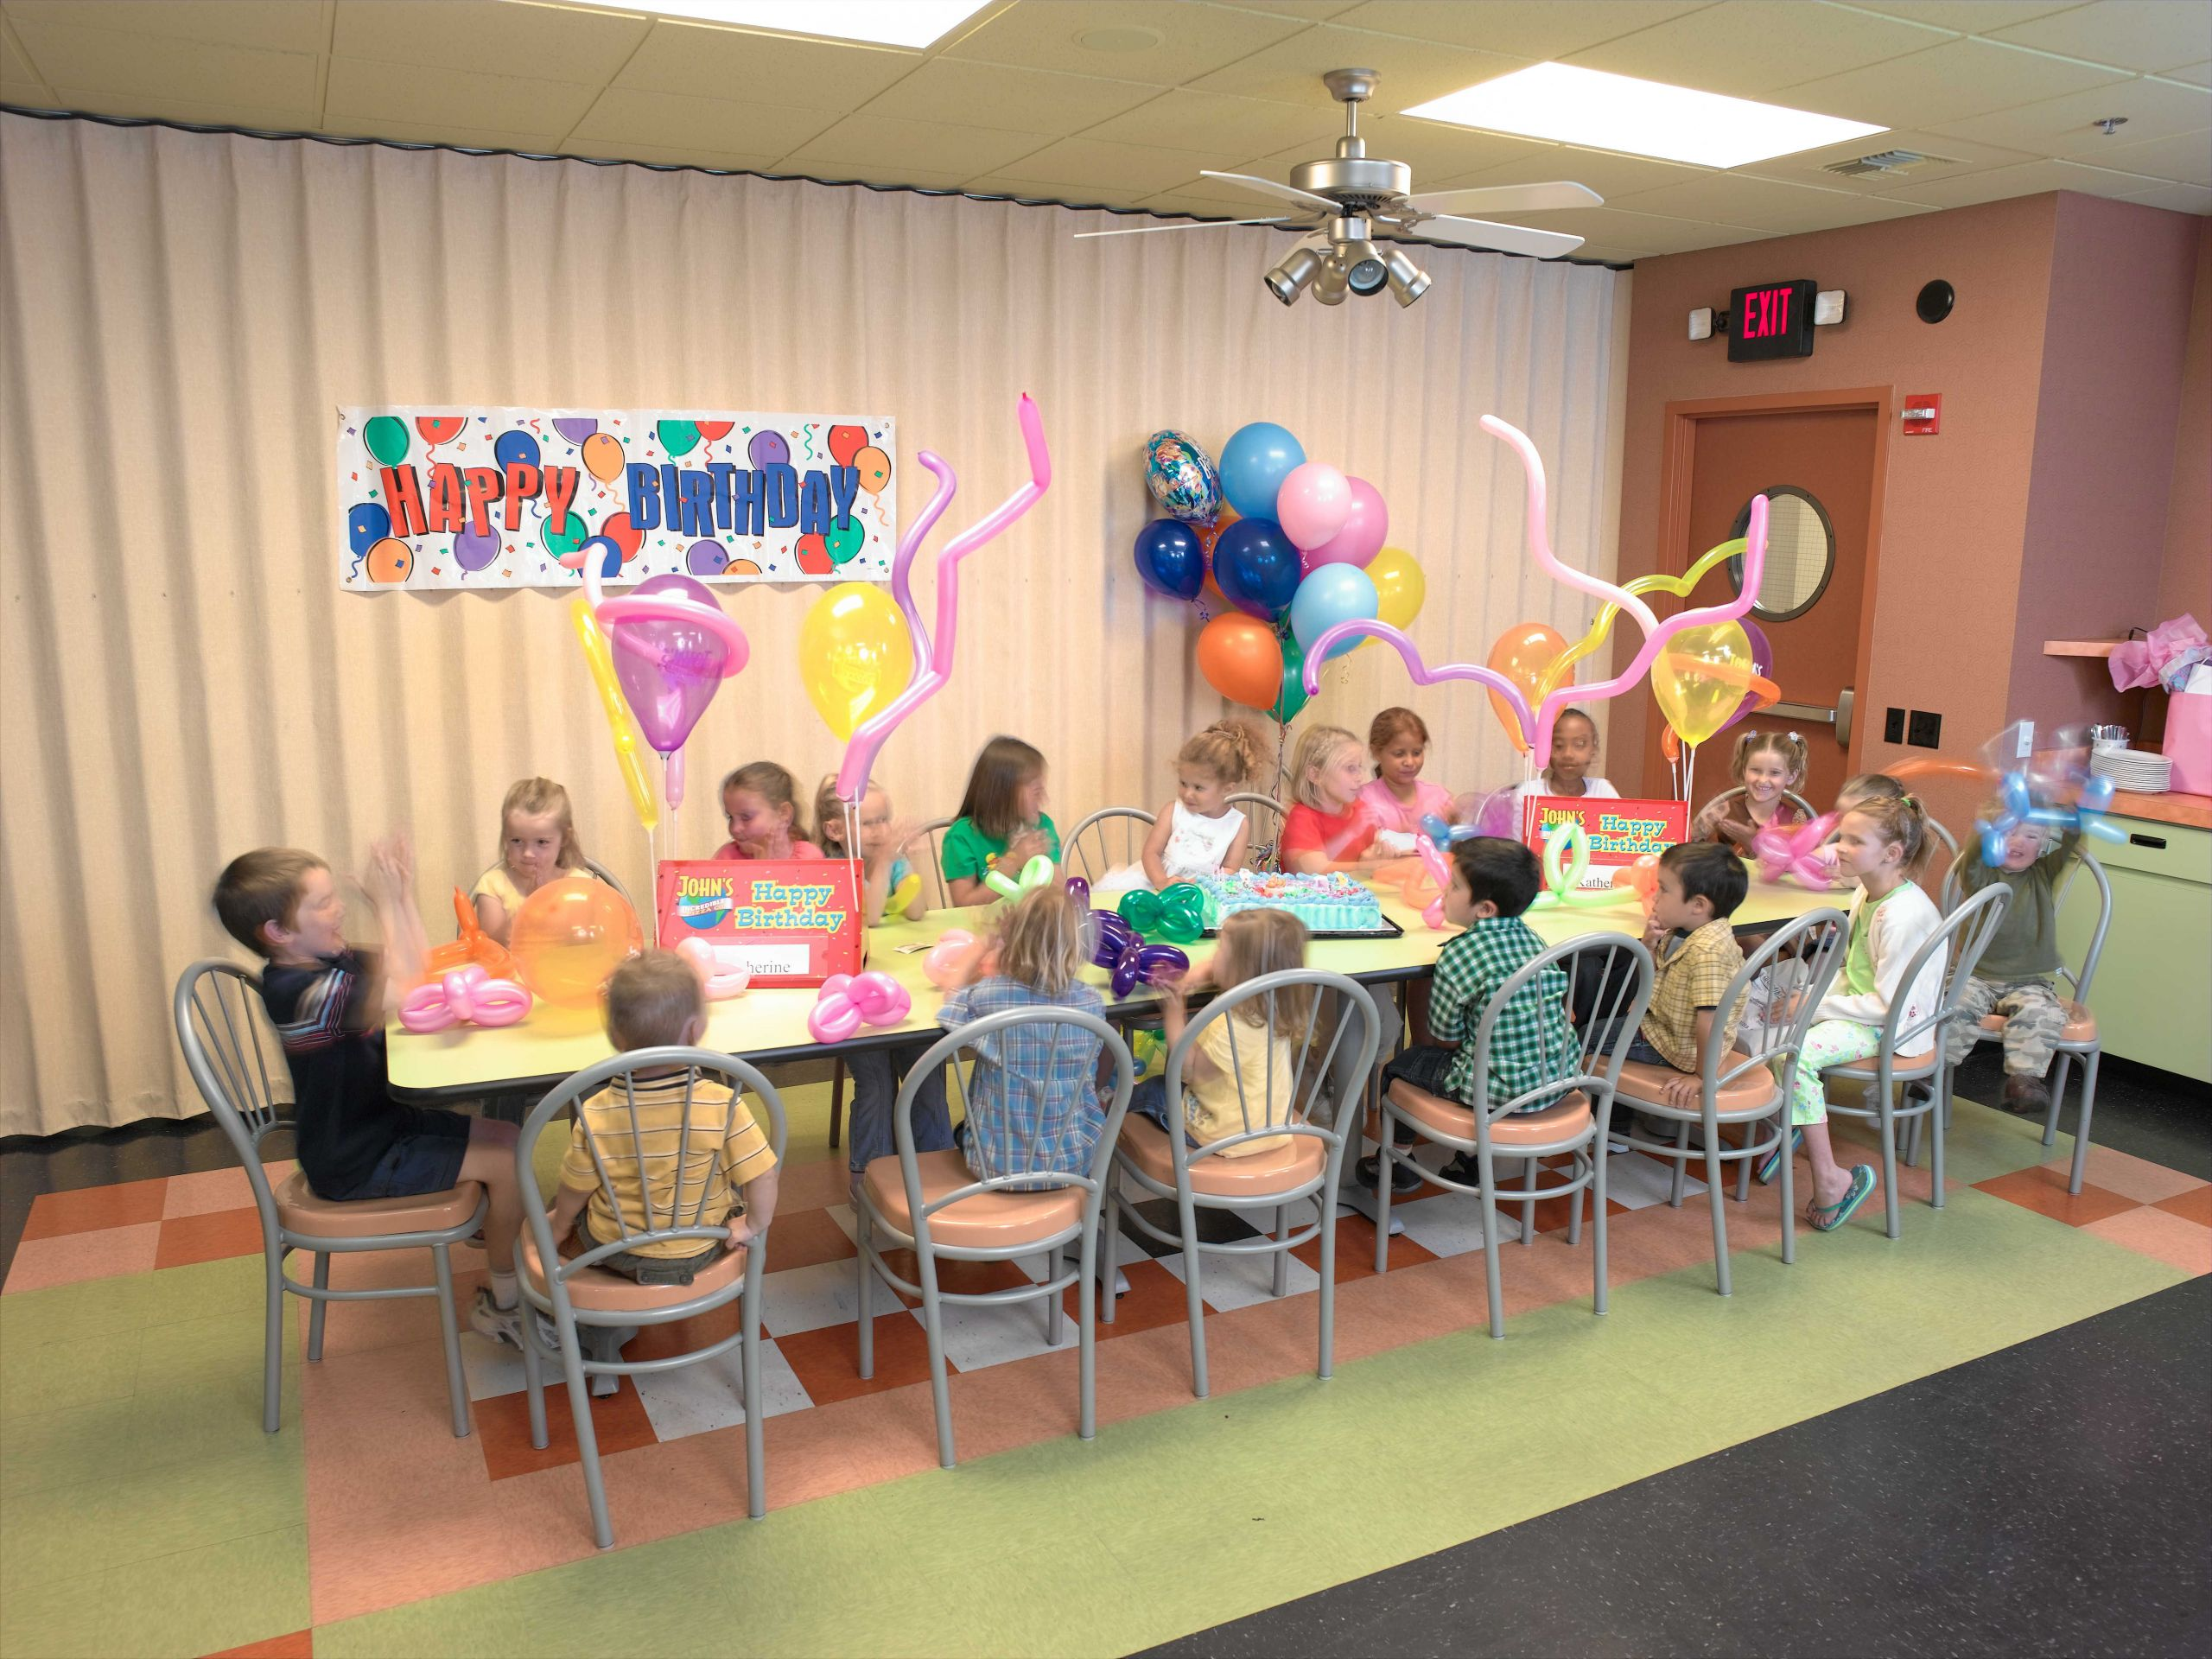 Kids Birthday Party Location Ideas  Ideas for Planning an Affordable Birthday Party for Your